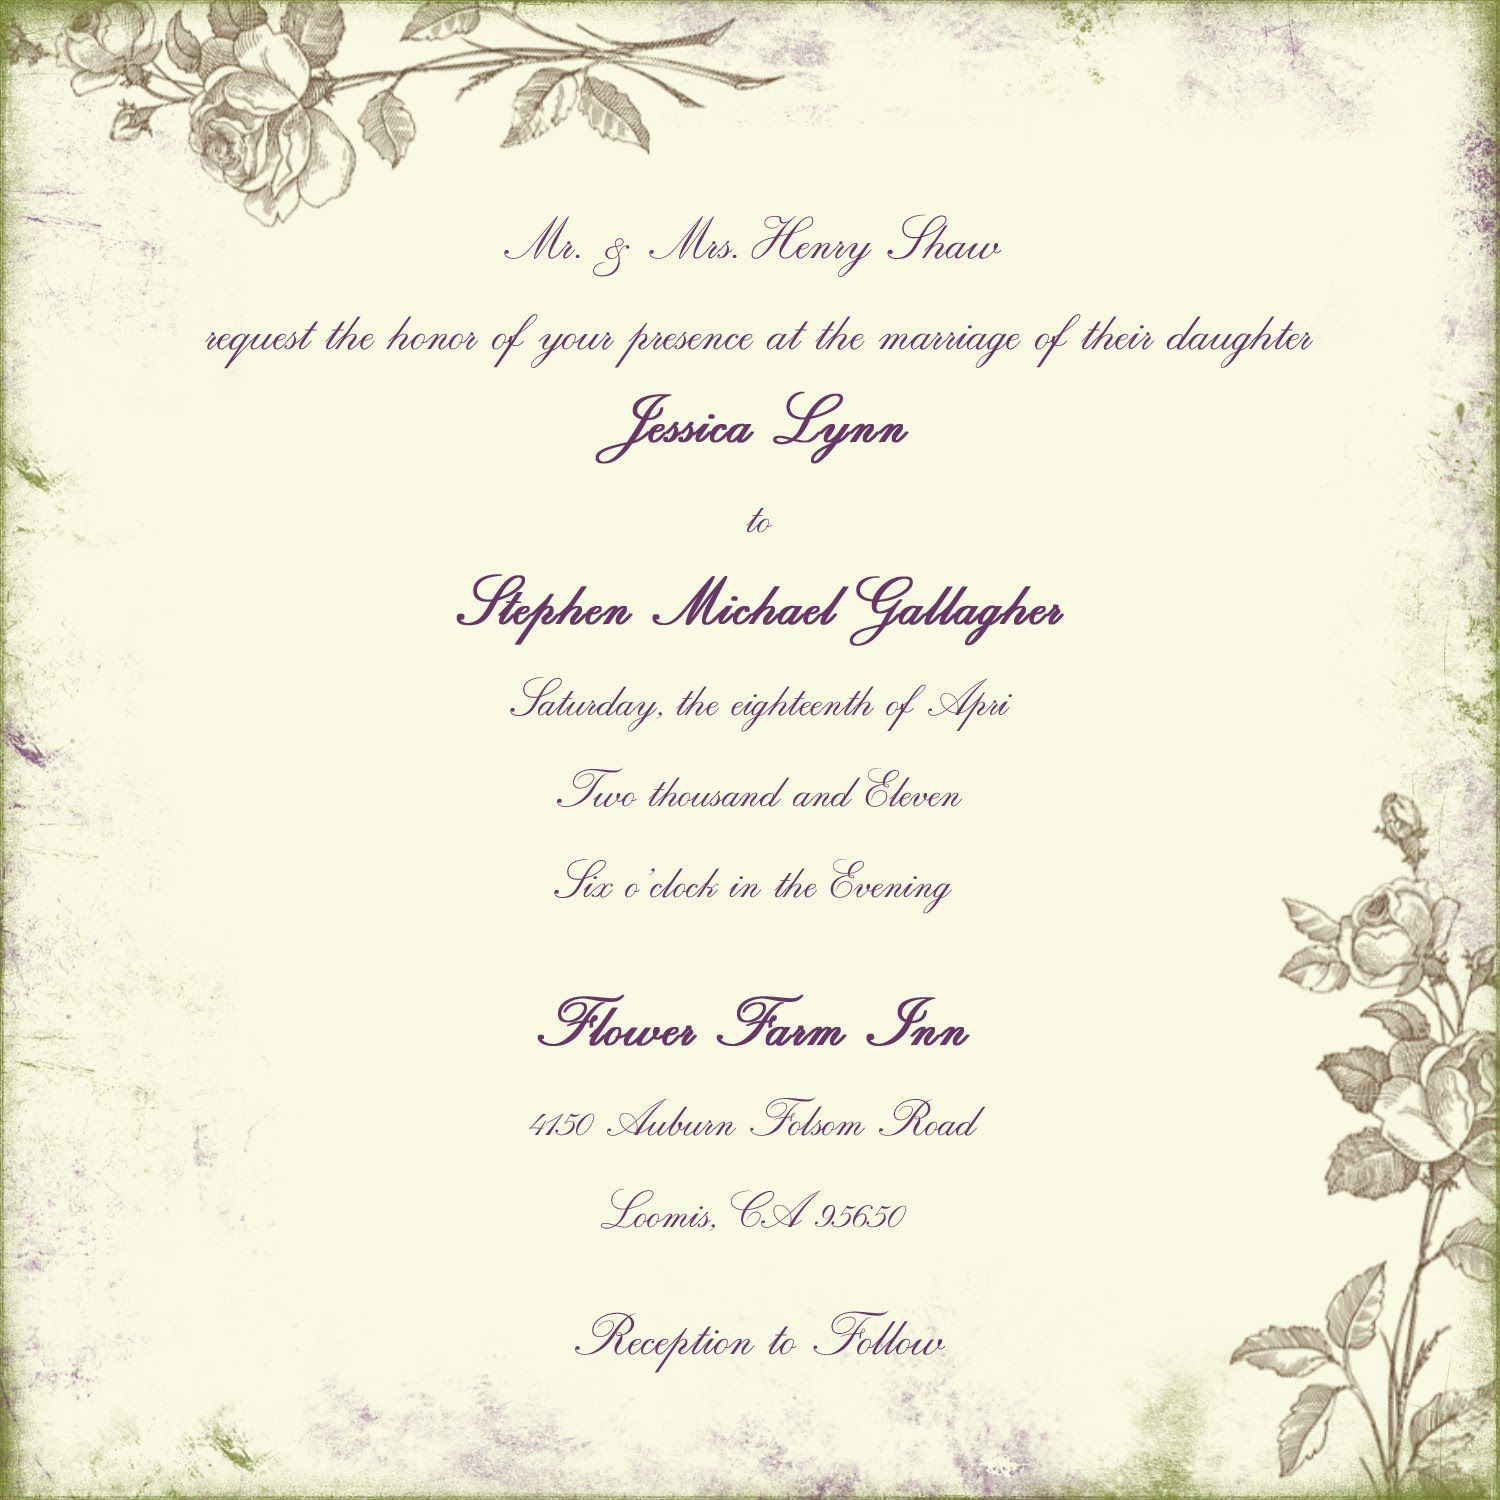 Wedding Invitation Etiquette HttpWwwMyweddingprinterCom